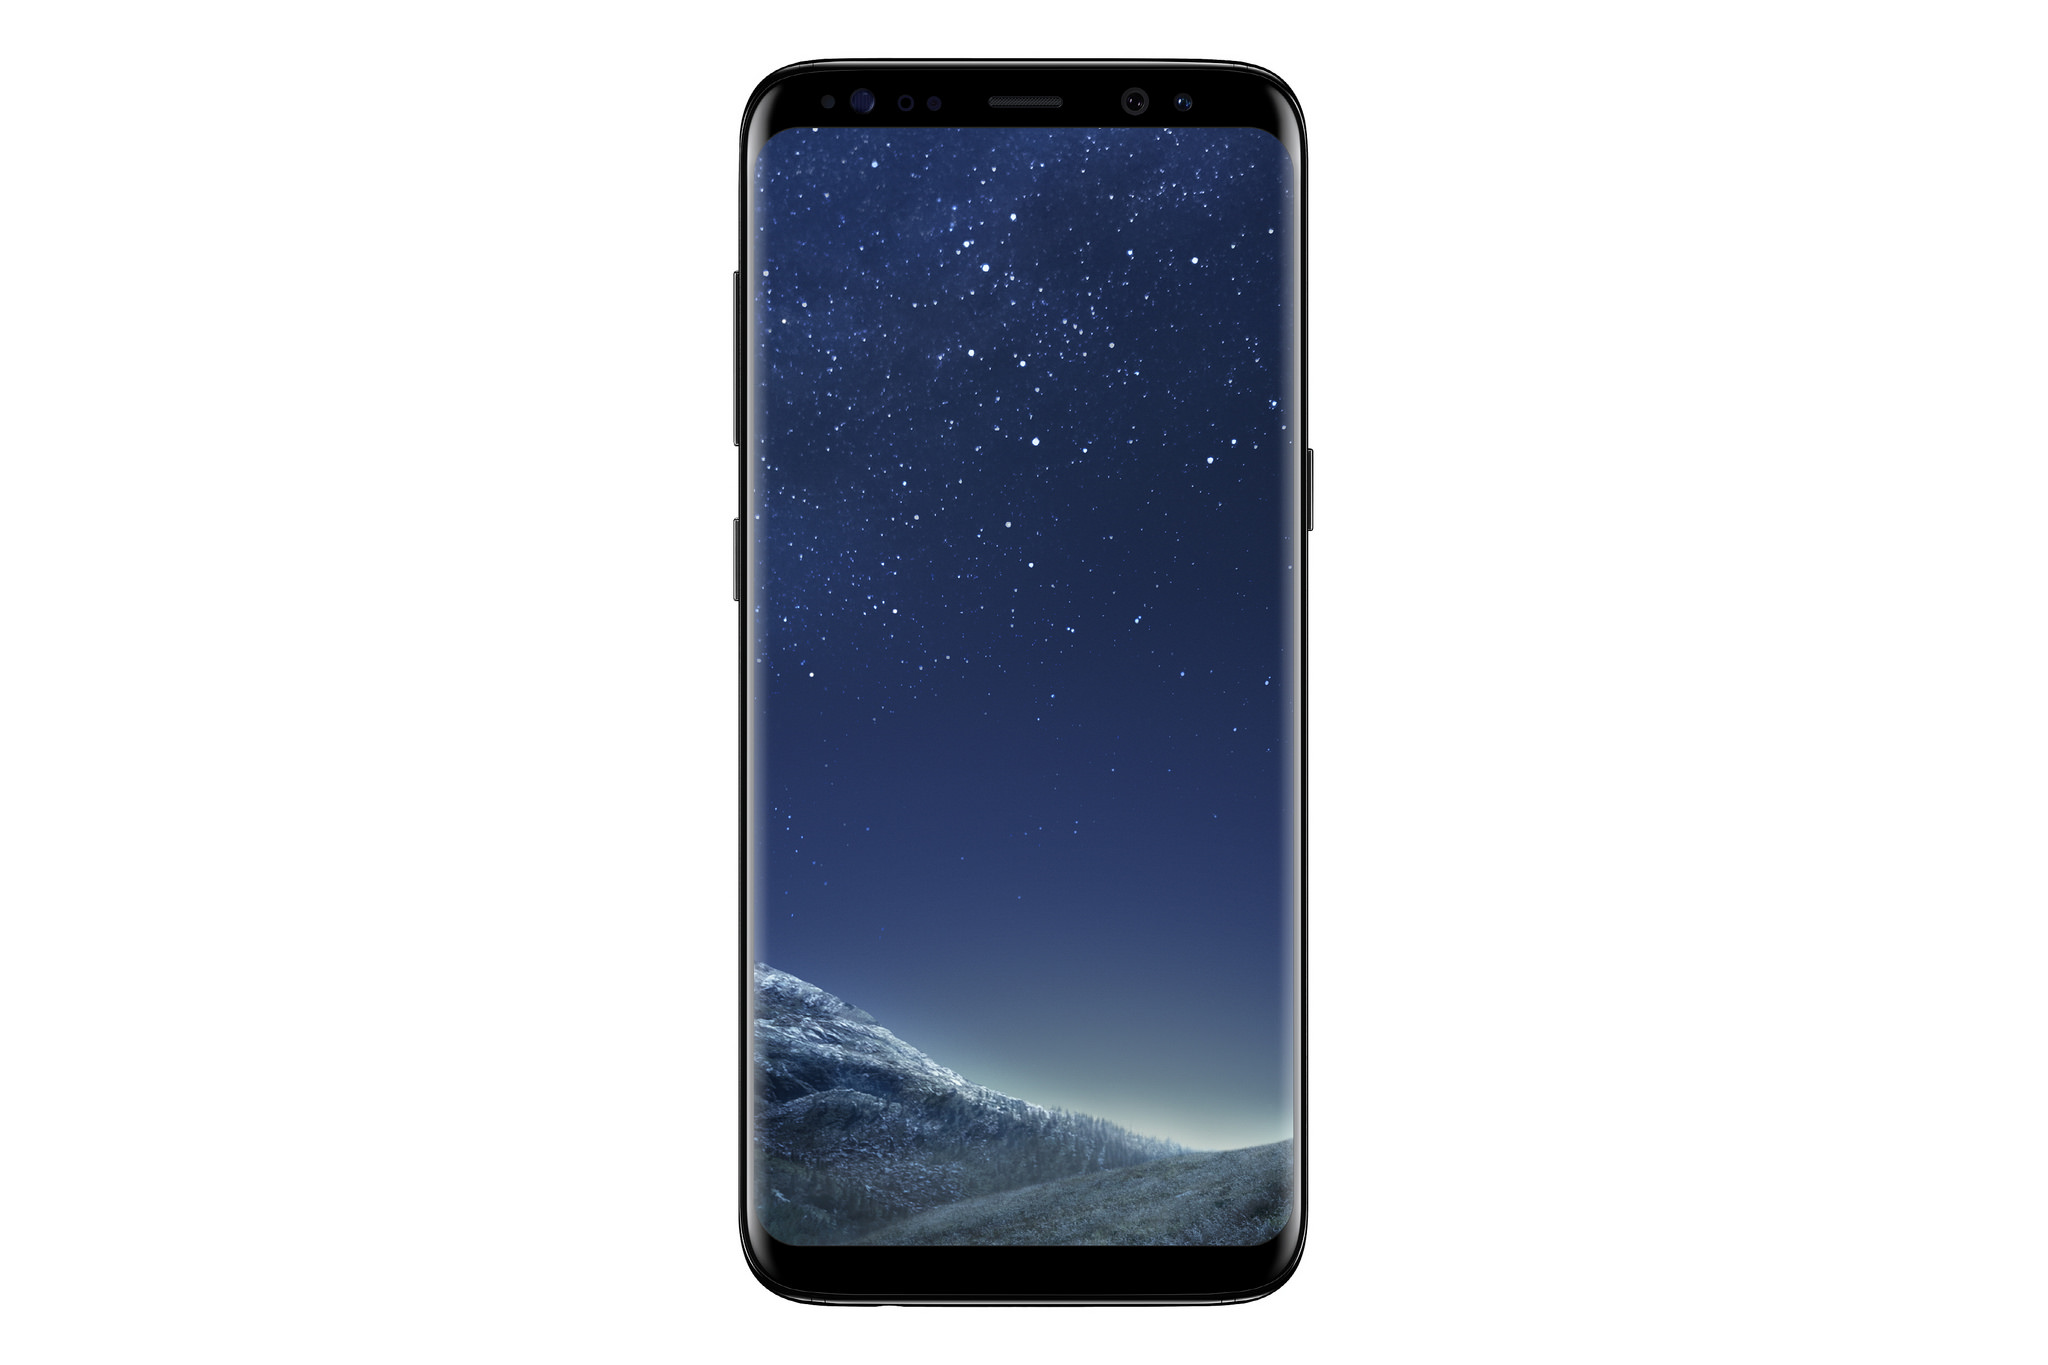 samsung galaxy s8 price specs features release date and. Black Bedroom Furniture Sets. Home Design Ideas